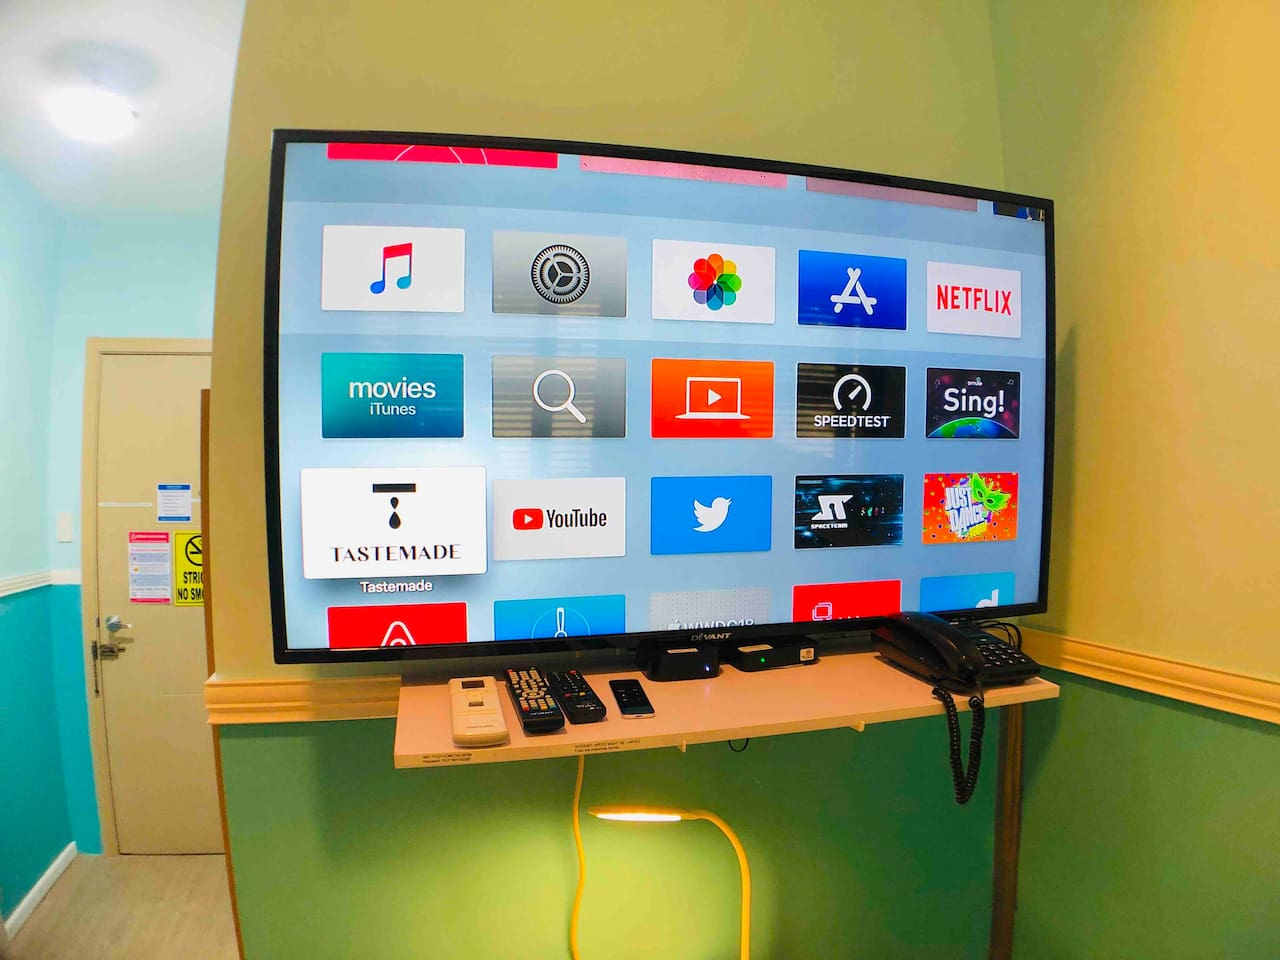 50-inch LED TV with Apple TV. Active subscriptios to Netflix, Fox+, Just Dance, Amazon Movies. Youtube. And a lot of new movies on Apple Movies. ABS-CBN TV plus for local channels.